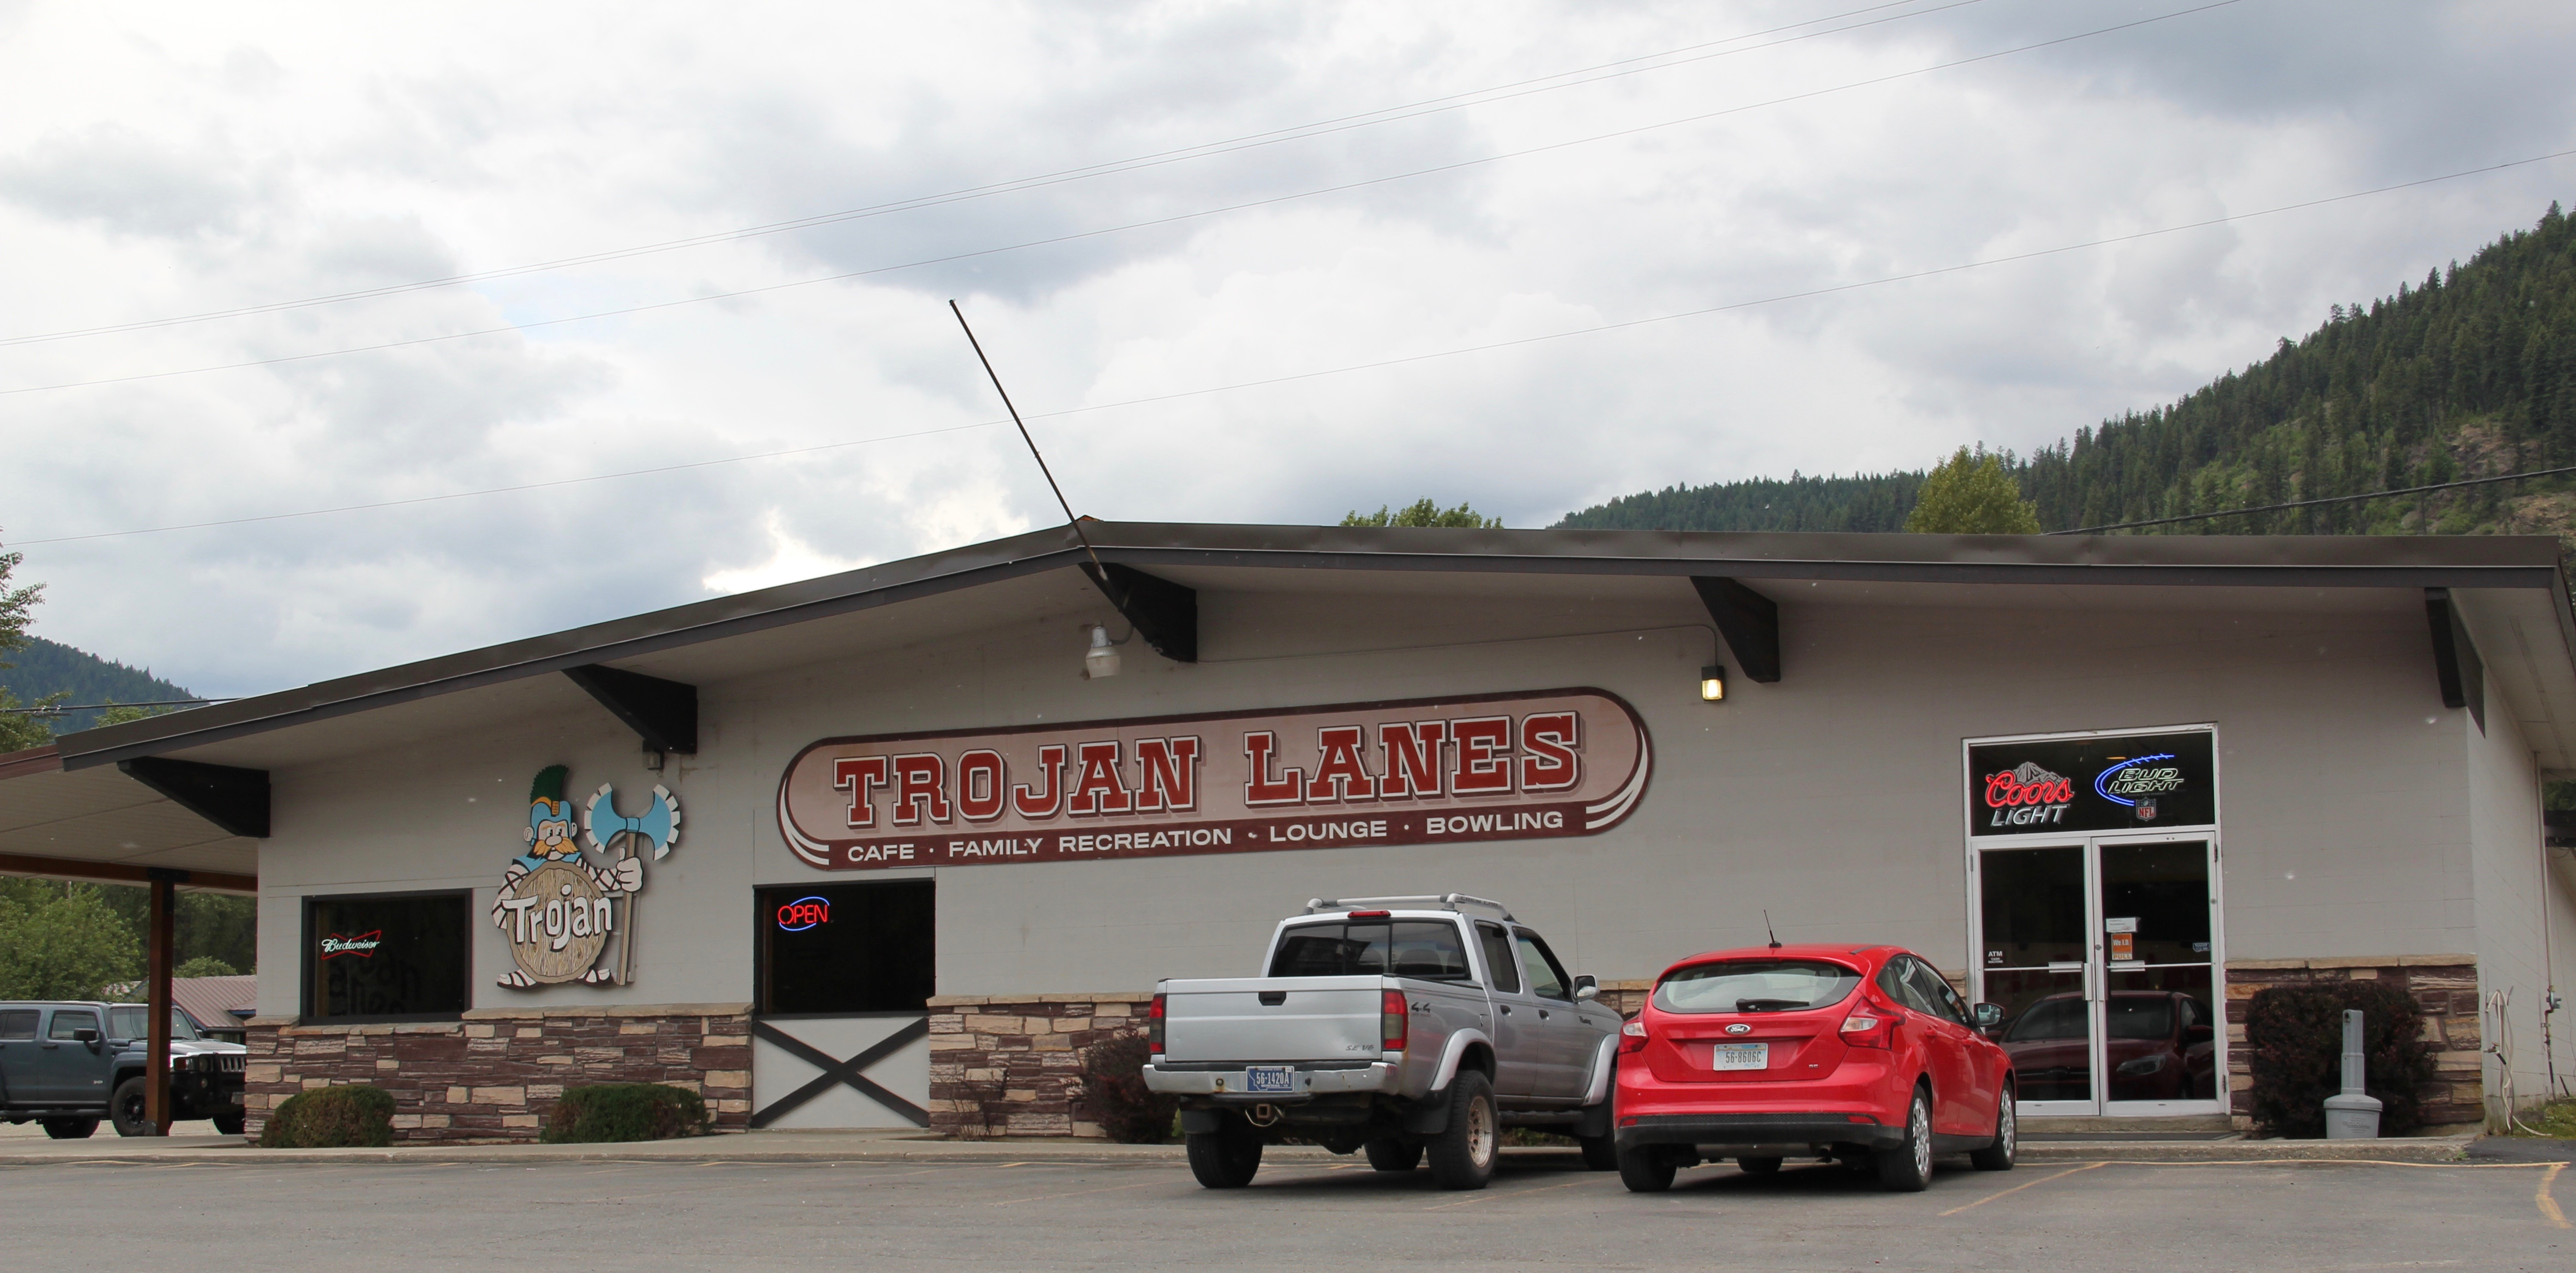 Lincoln Co Troy bowling lanes